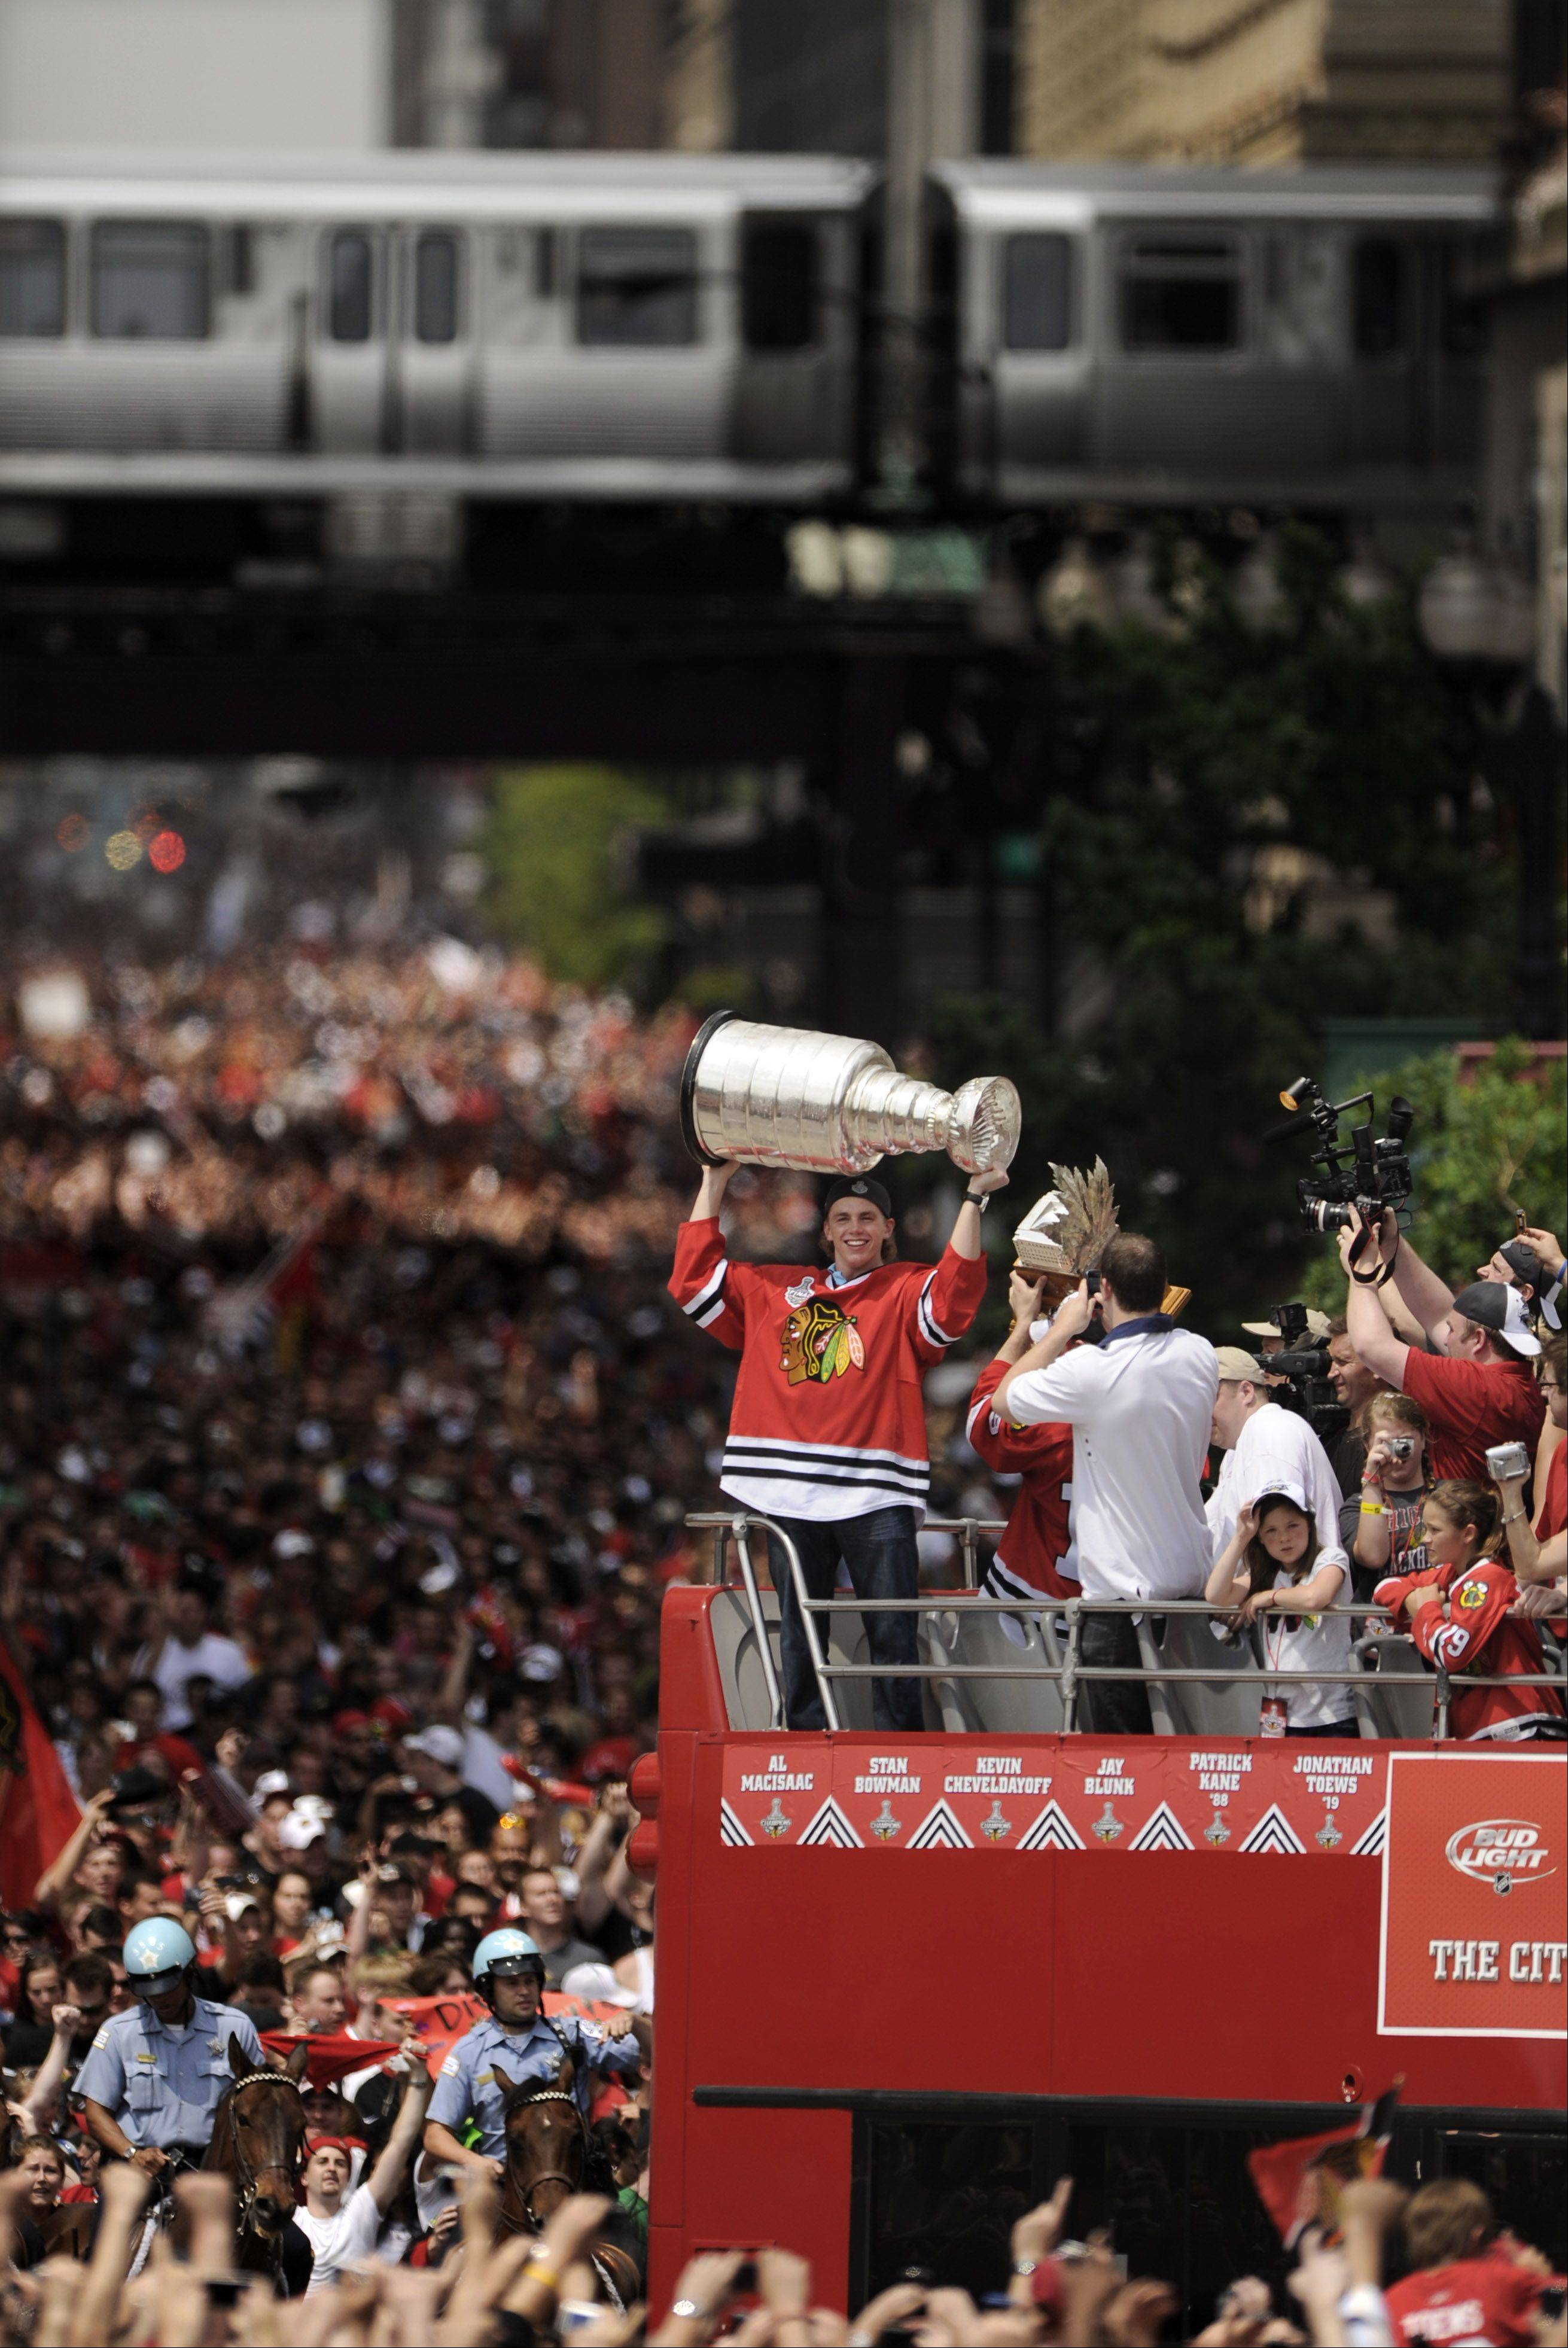 The Chicago Blackhawks' Patrick Kane hoists the Stanley Cup while celebrating with fans during a parade on Washington Street after the team's cup win in 2010.